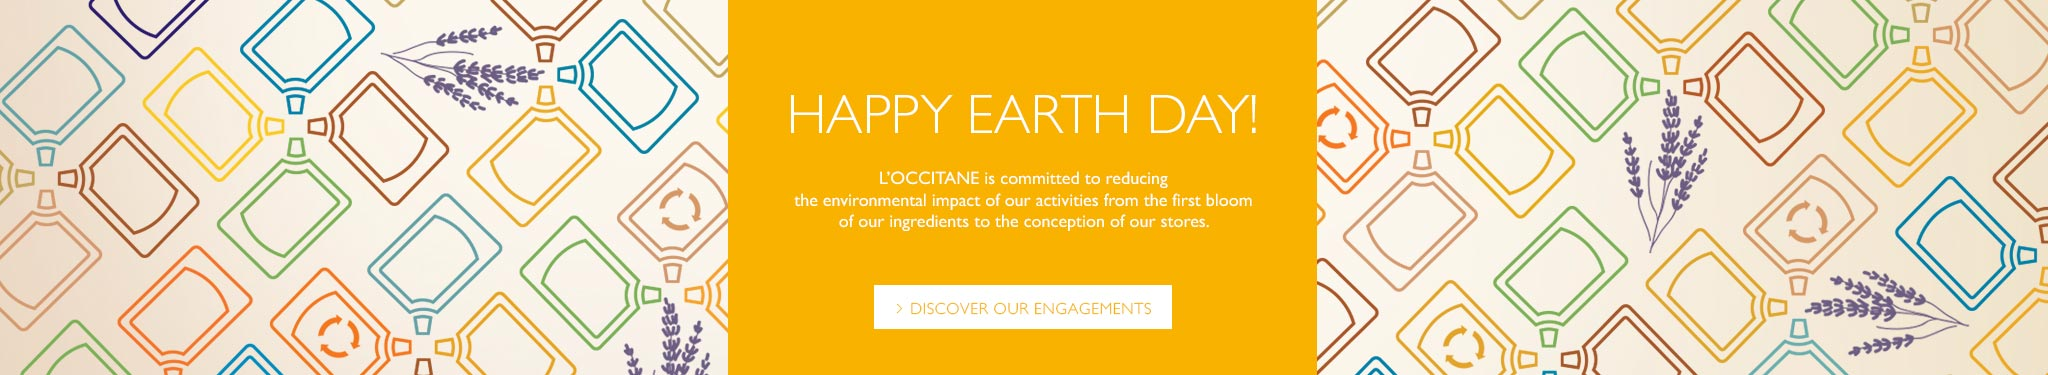 Happy Earth Day! L'Occitane is committed to reducing the environmental impact of our activities from the first bloom of our ingredients to the conception of our stores.